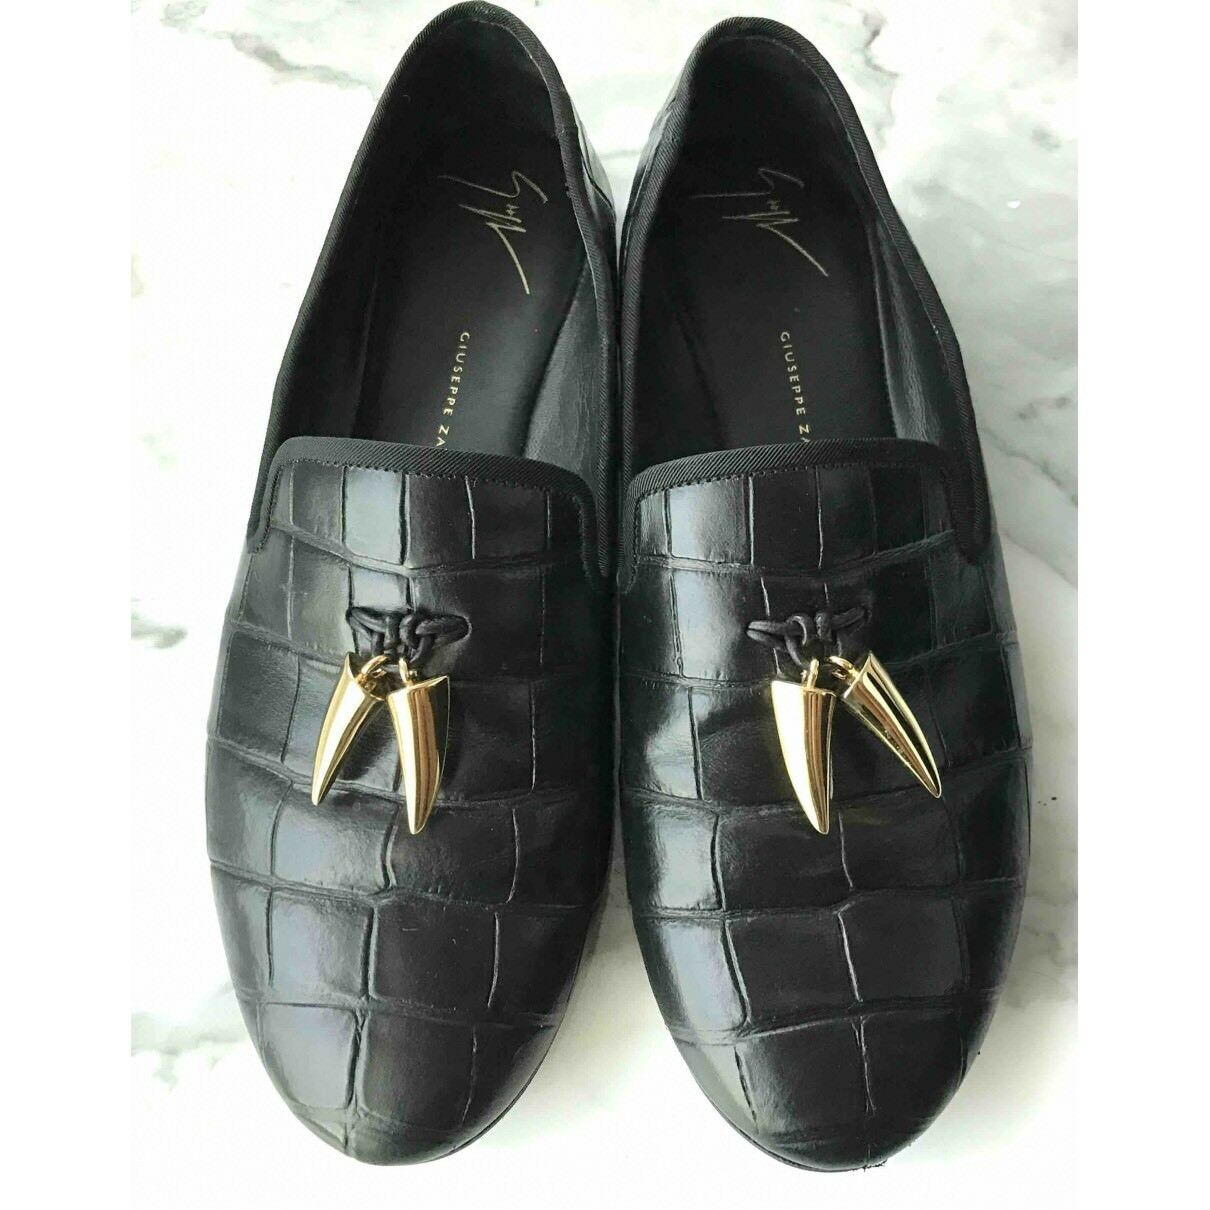 Giuseppe Zanotti Shark SPACEY Uomo Slippers Loafers Shoes Shark Zanotti Tooth Crocodile Print 01d1d8